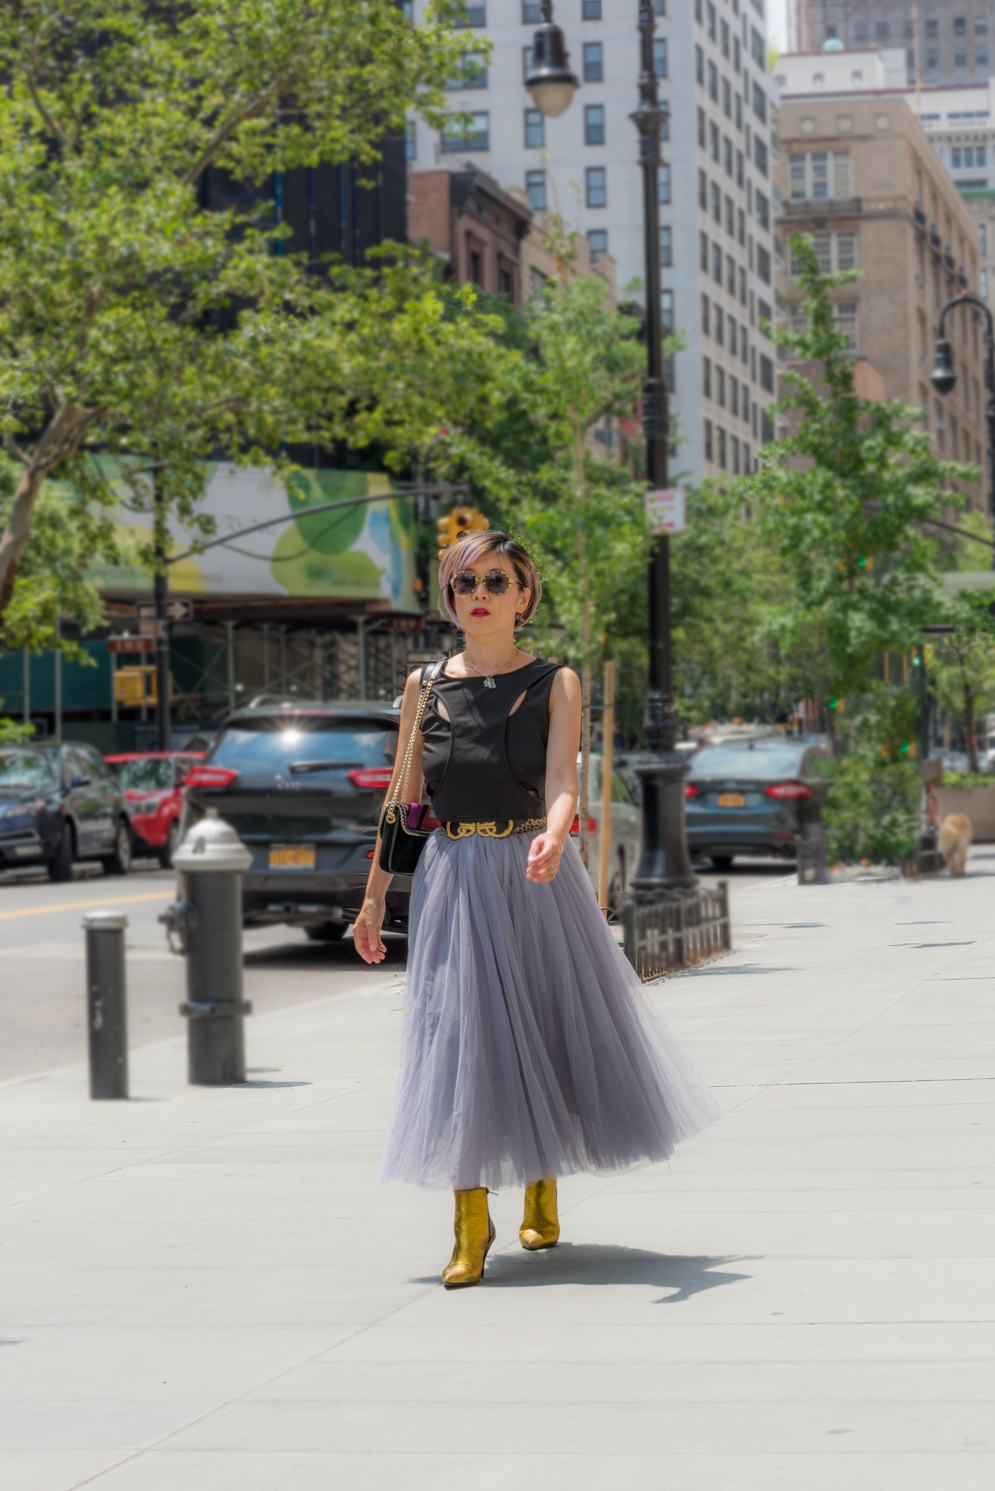 ROCK MAMA NYC LIFESTYLE BLOG - MIX AND MATCH SWEET AND SPICY